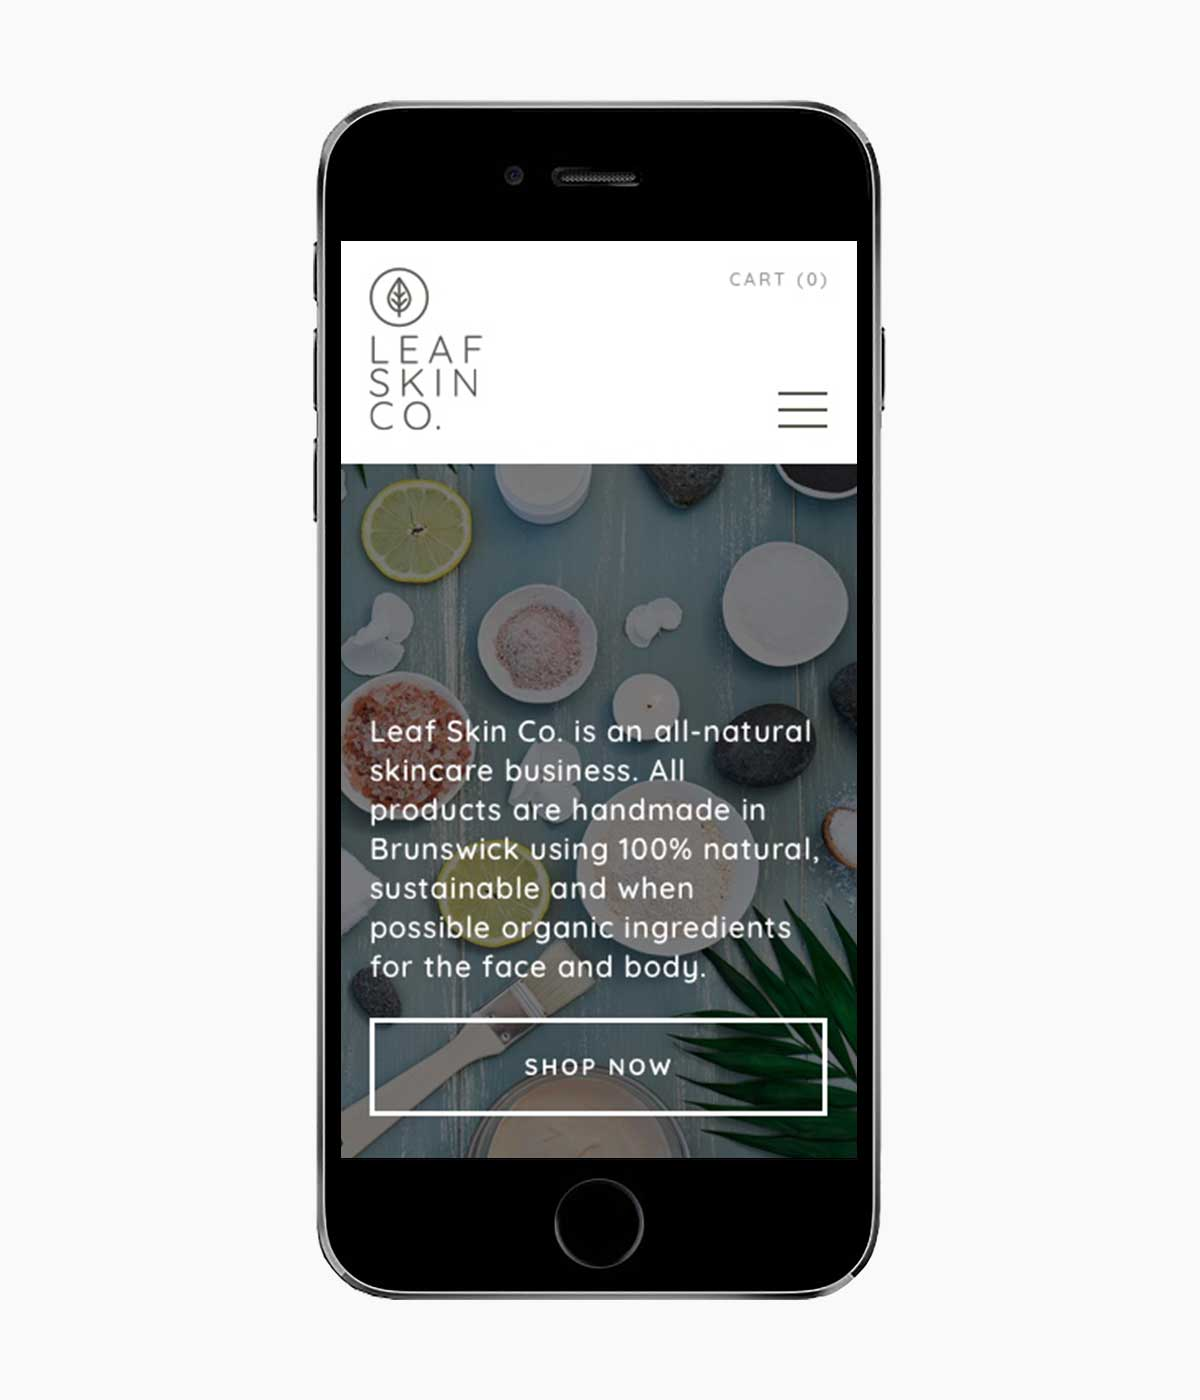 Leaf Skin responsive website on iPhone in portrait view